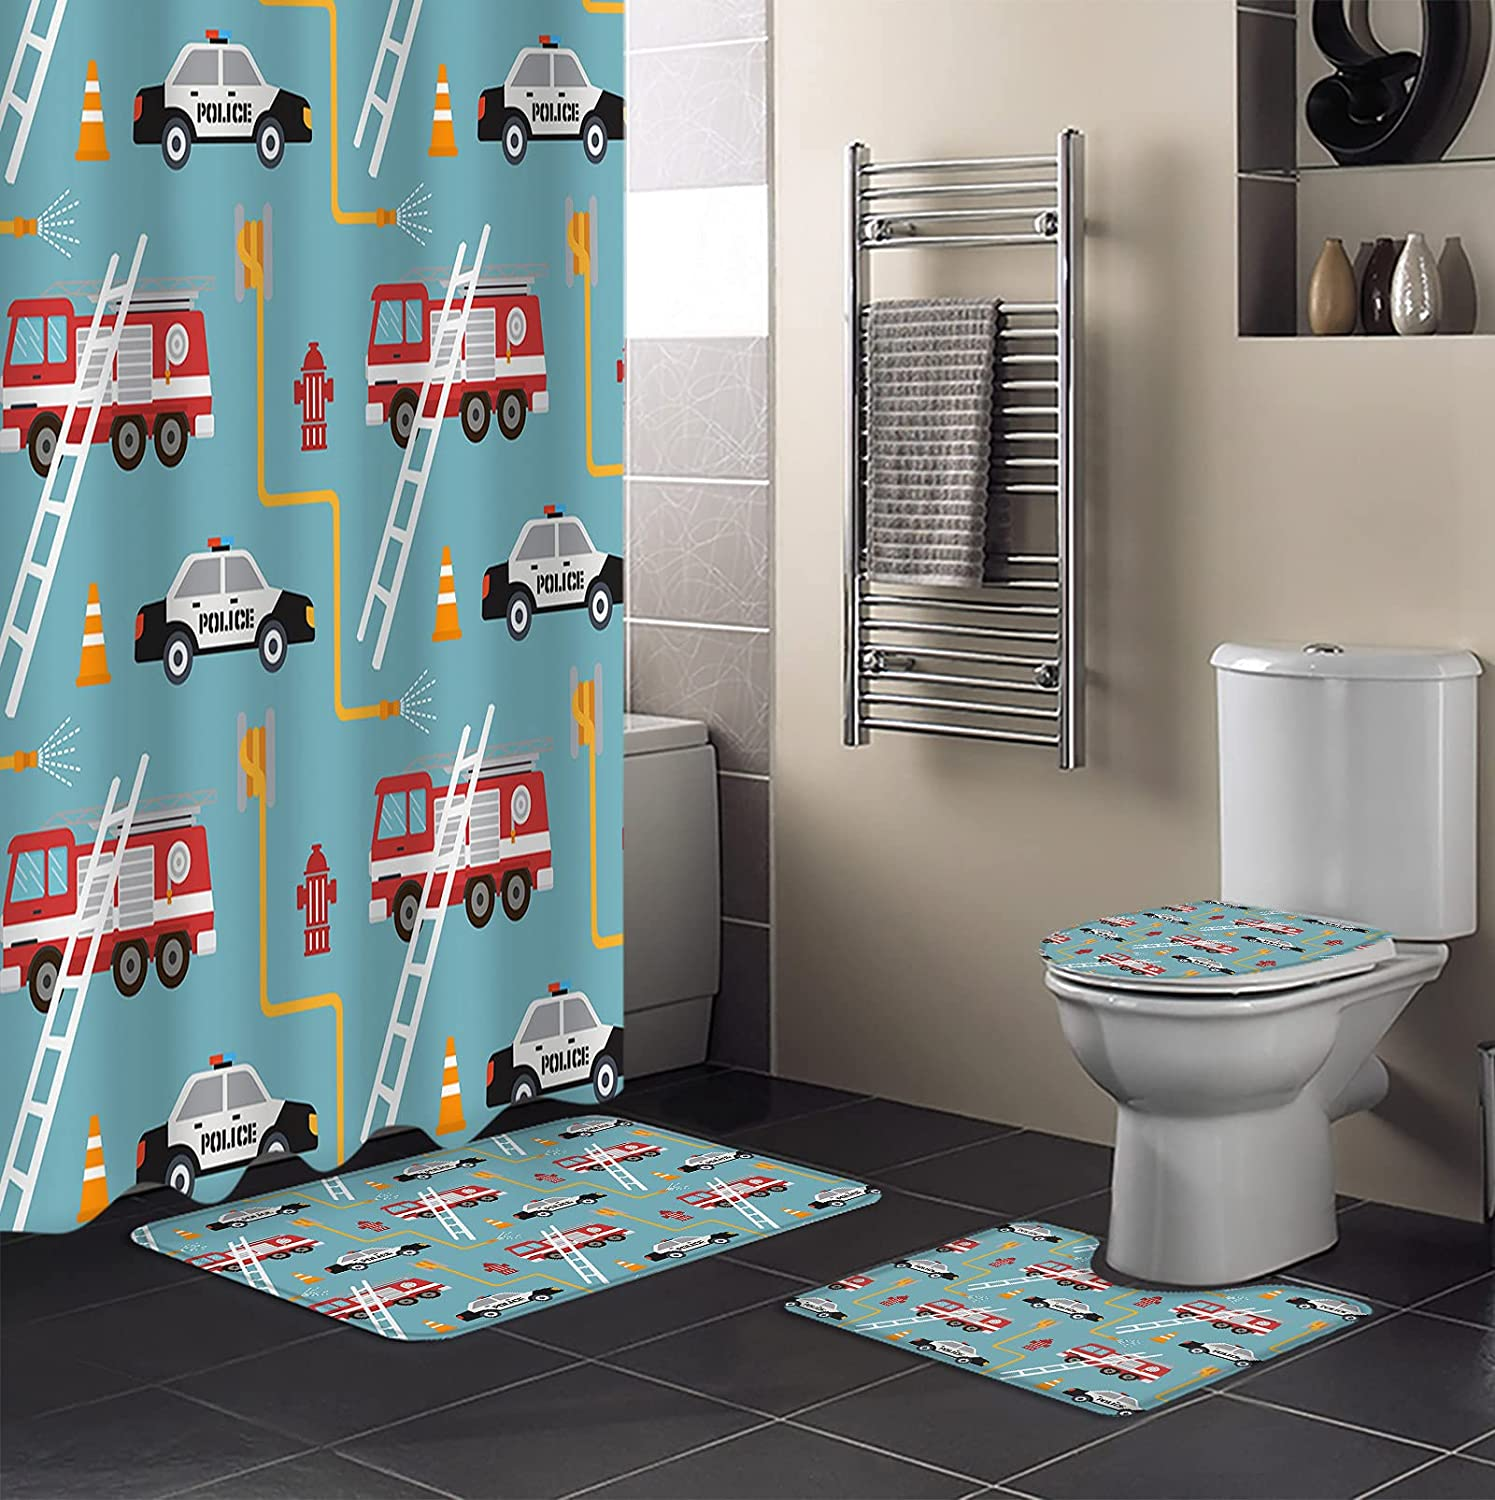 4 PCS Shower Curtain Sets Waterproof depot 67% OFF of fixed price Bathroom with Non-Sli